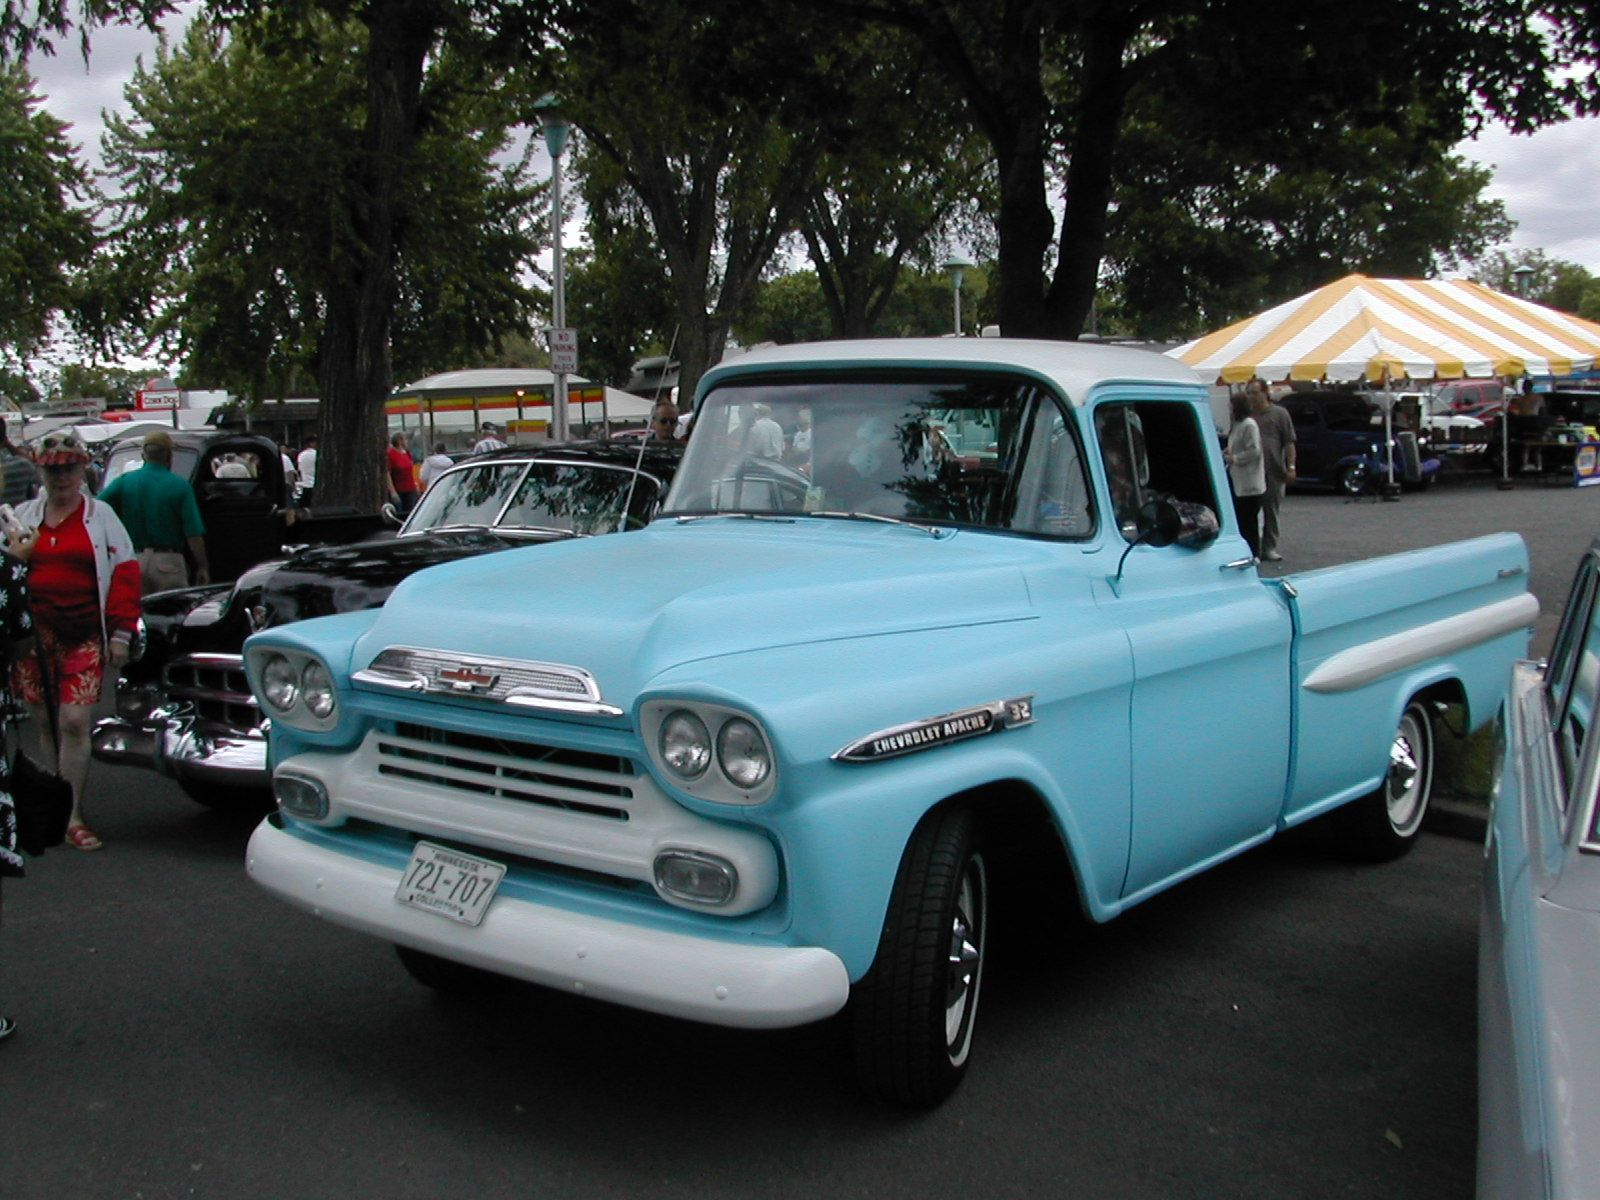 58 Or 59 Chevy Fleet Side Classic Trucks Vintage Trucks Chevy